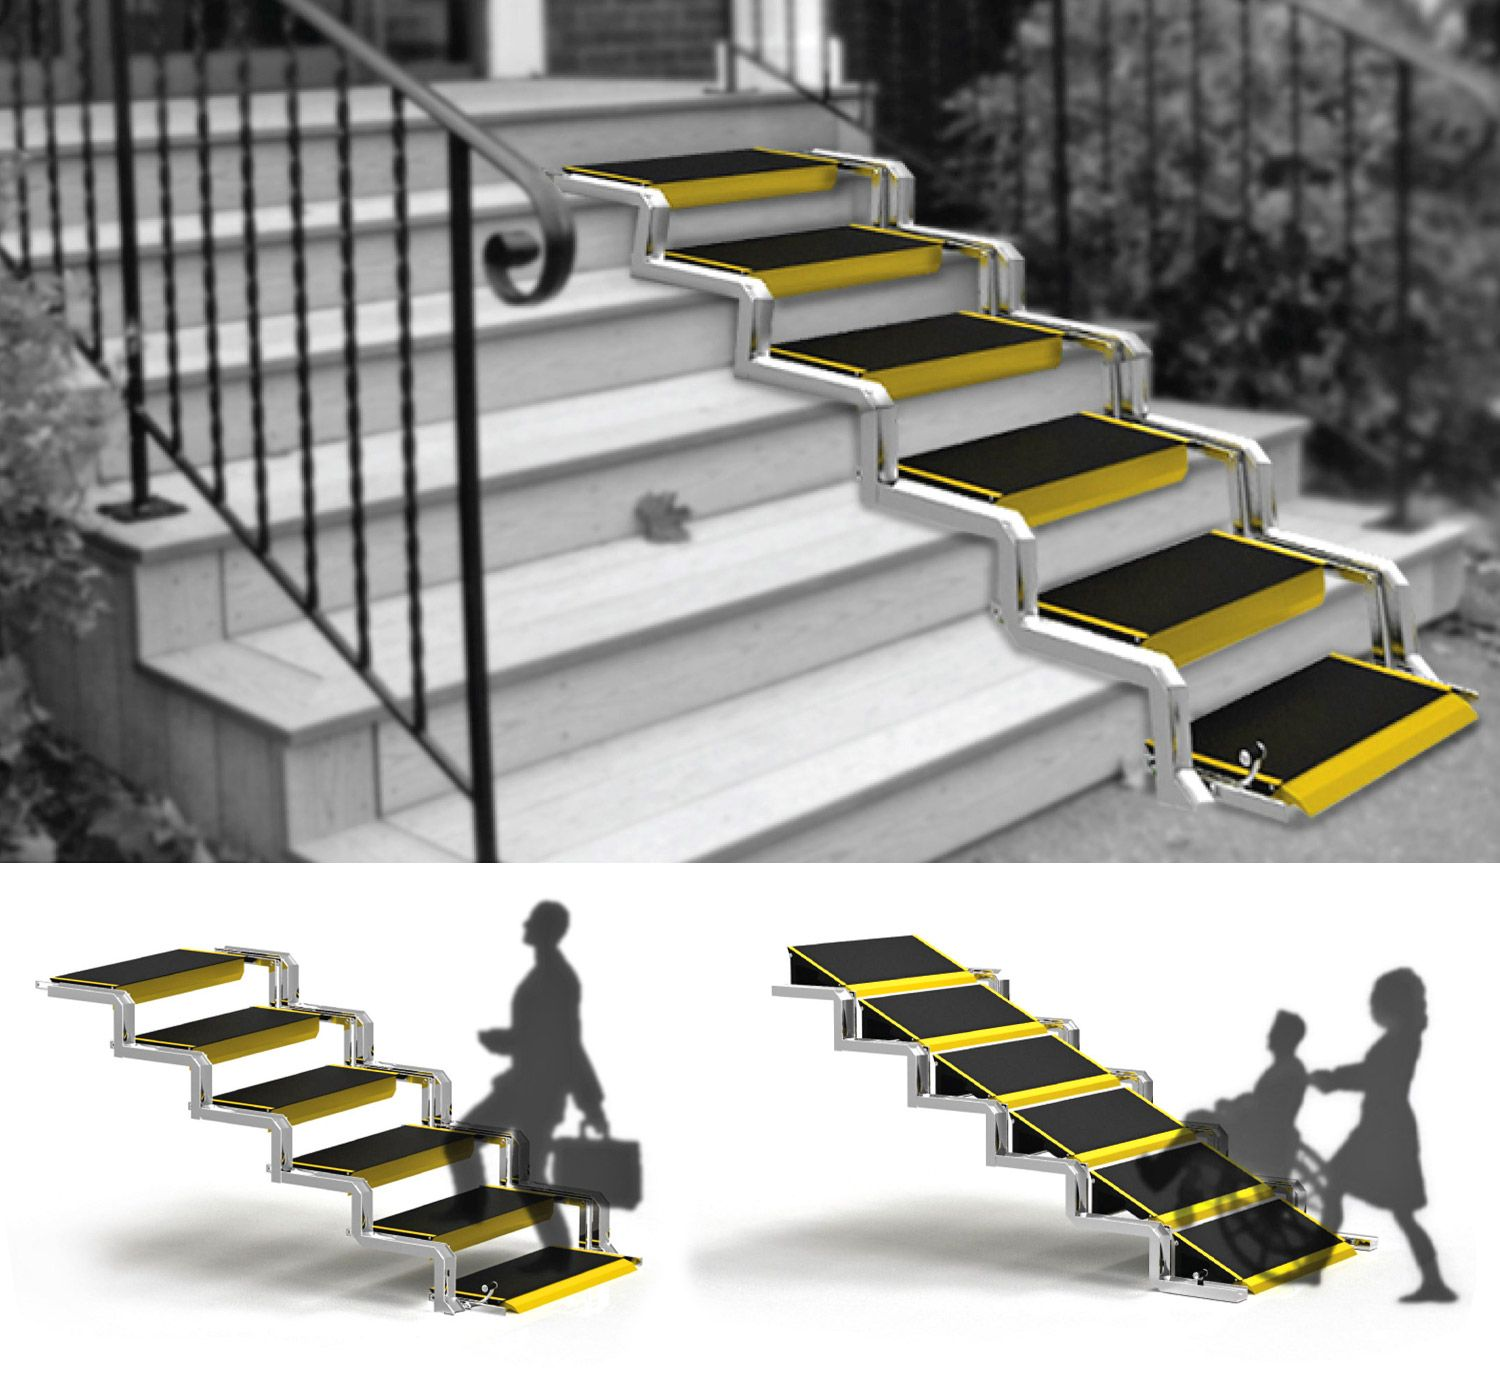 These Convertible Stairs Convert Into A Wheelchair Ramp